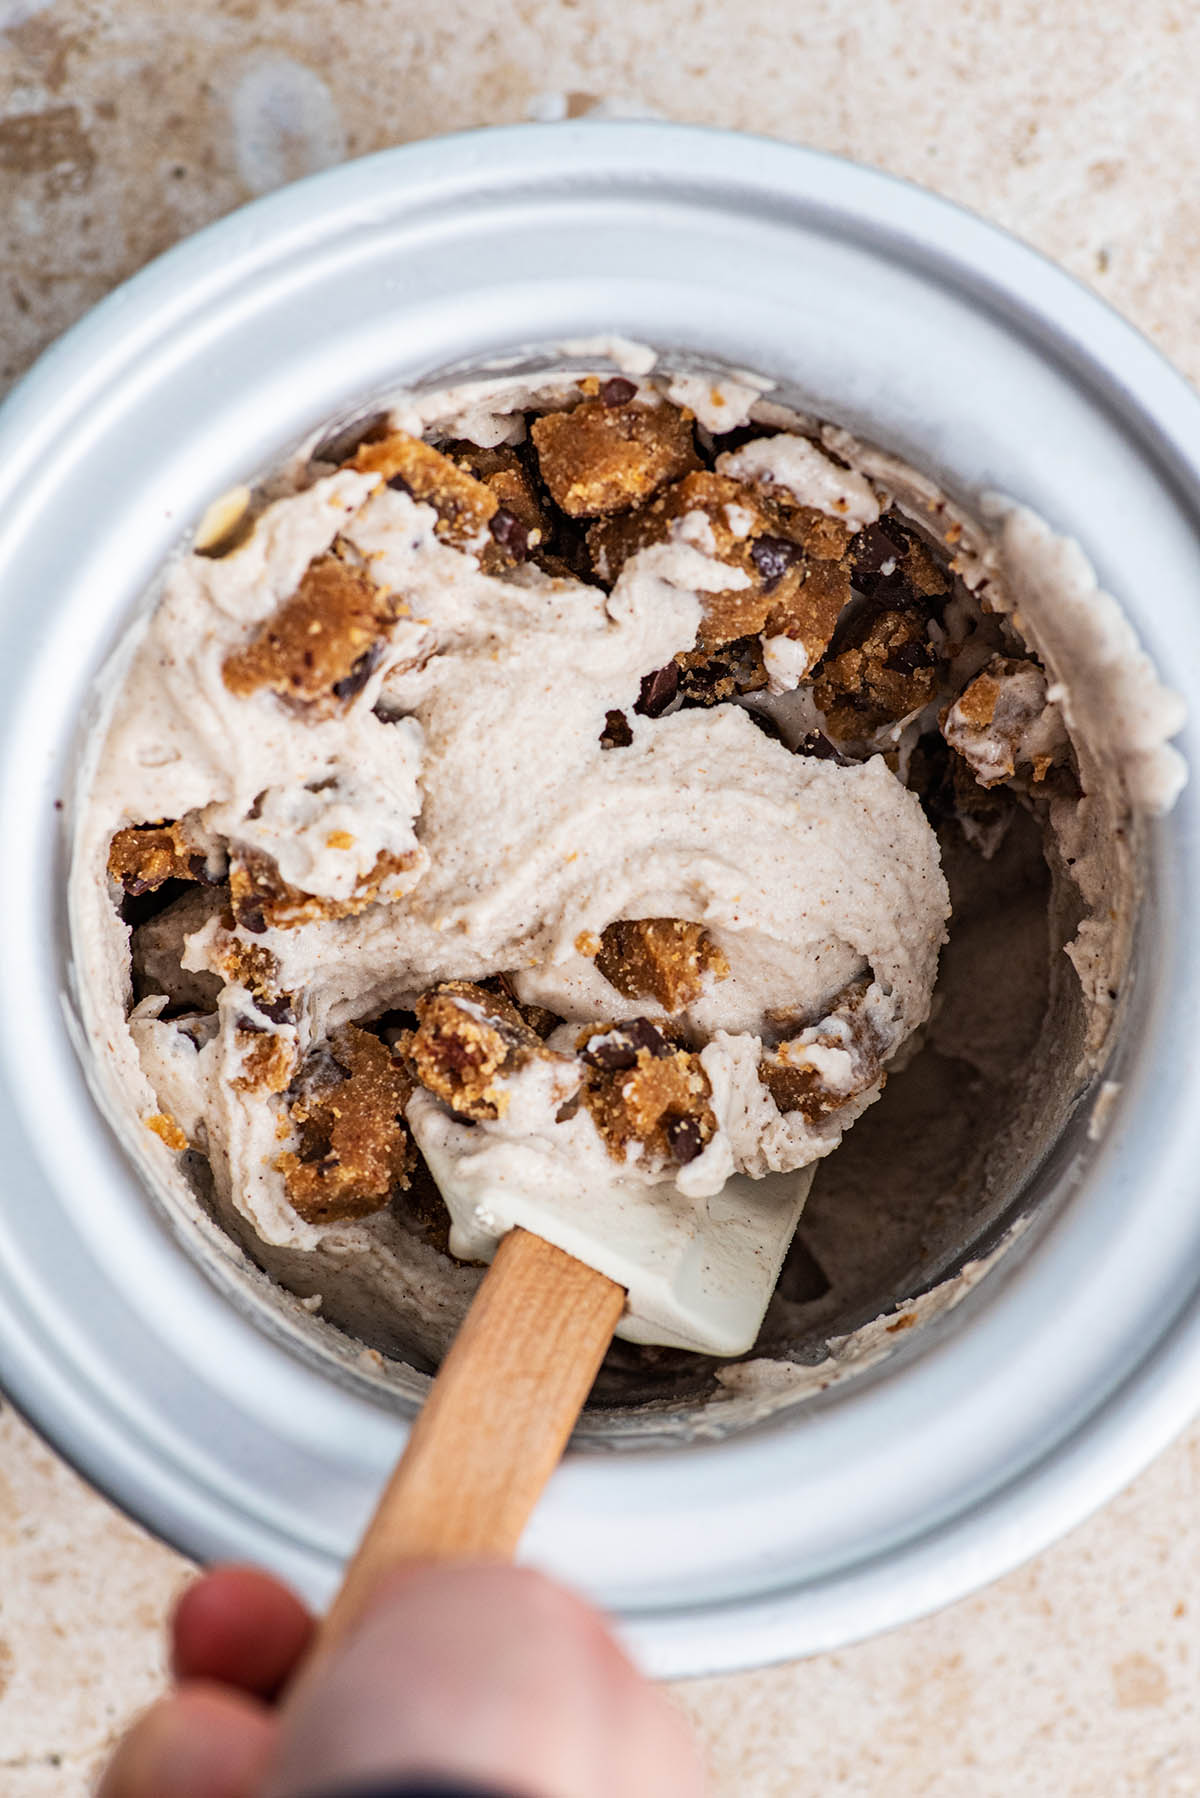 Stirring bits of cookie dough into the ice cream.